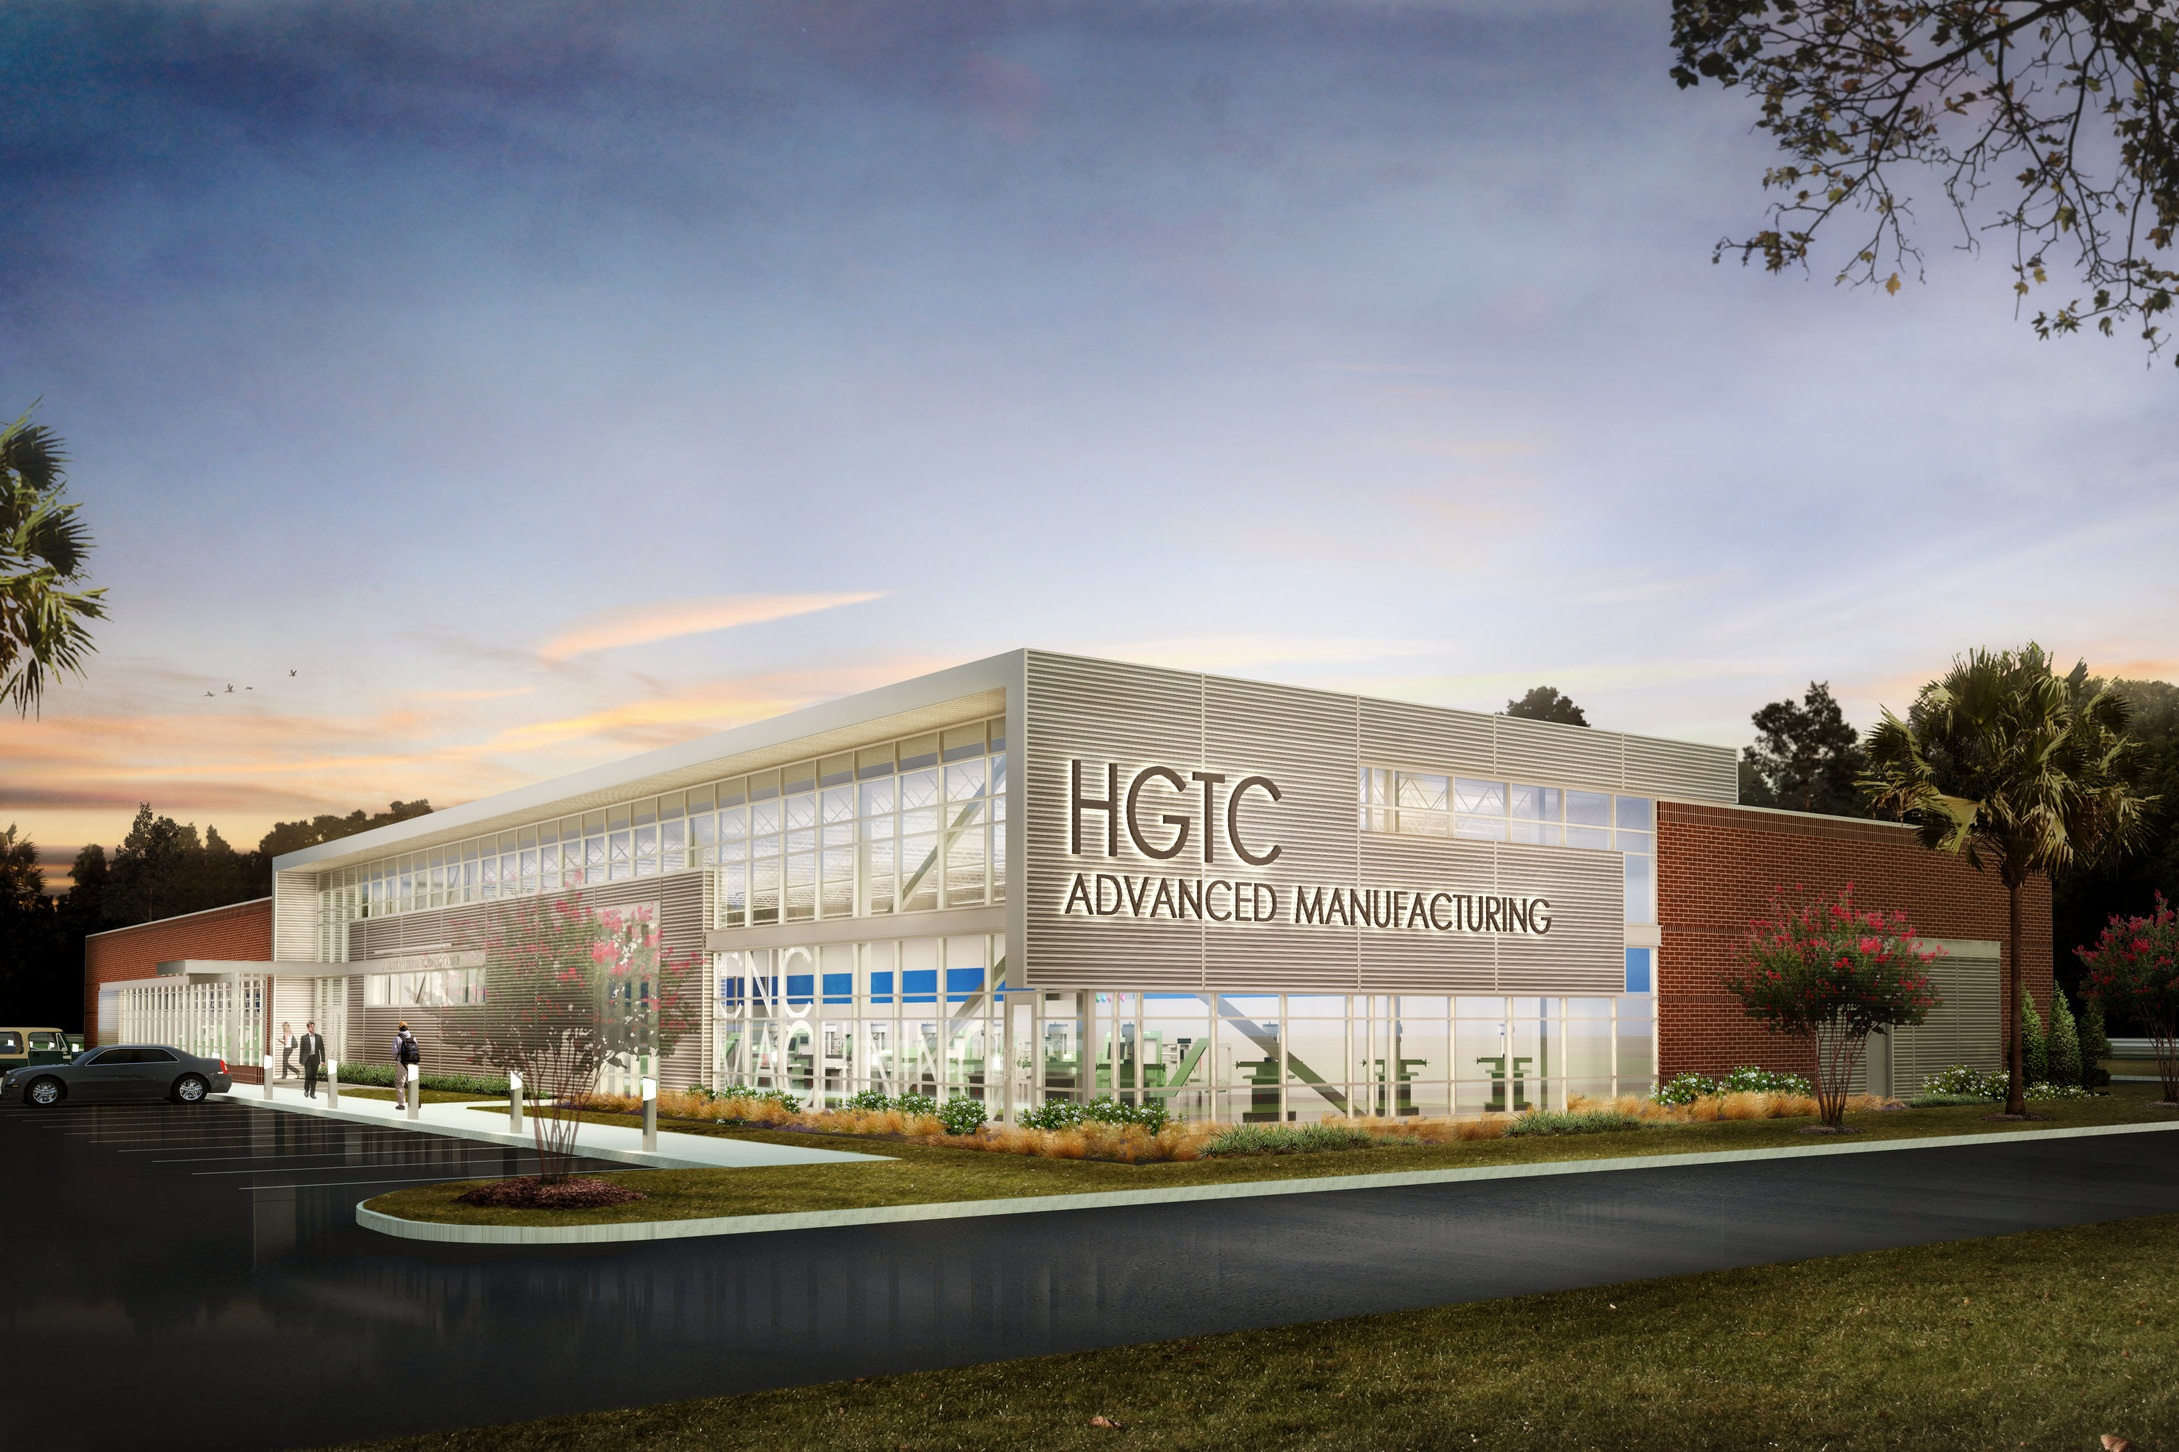 horry georgetown technical college advanced manufacturing center